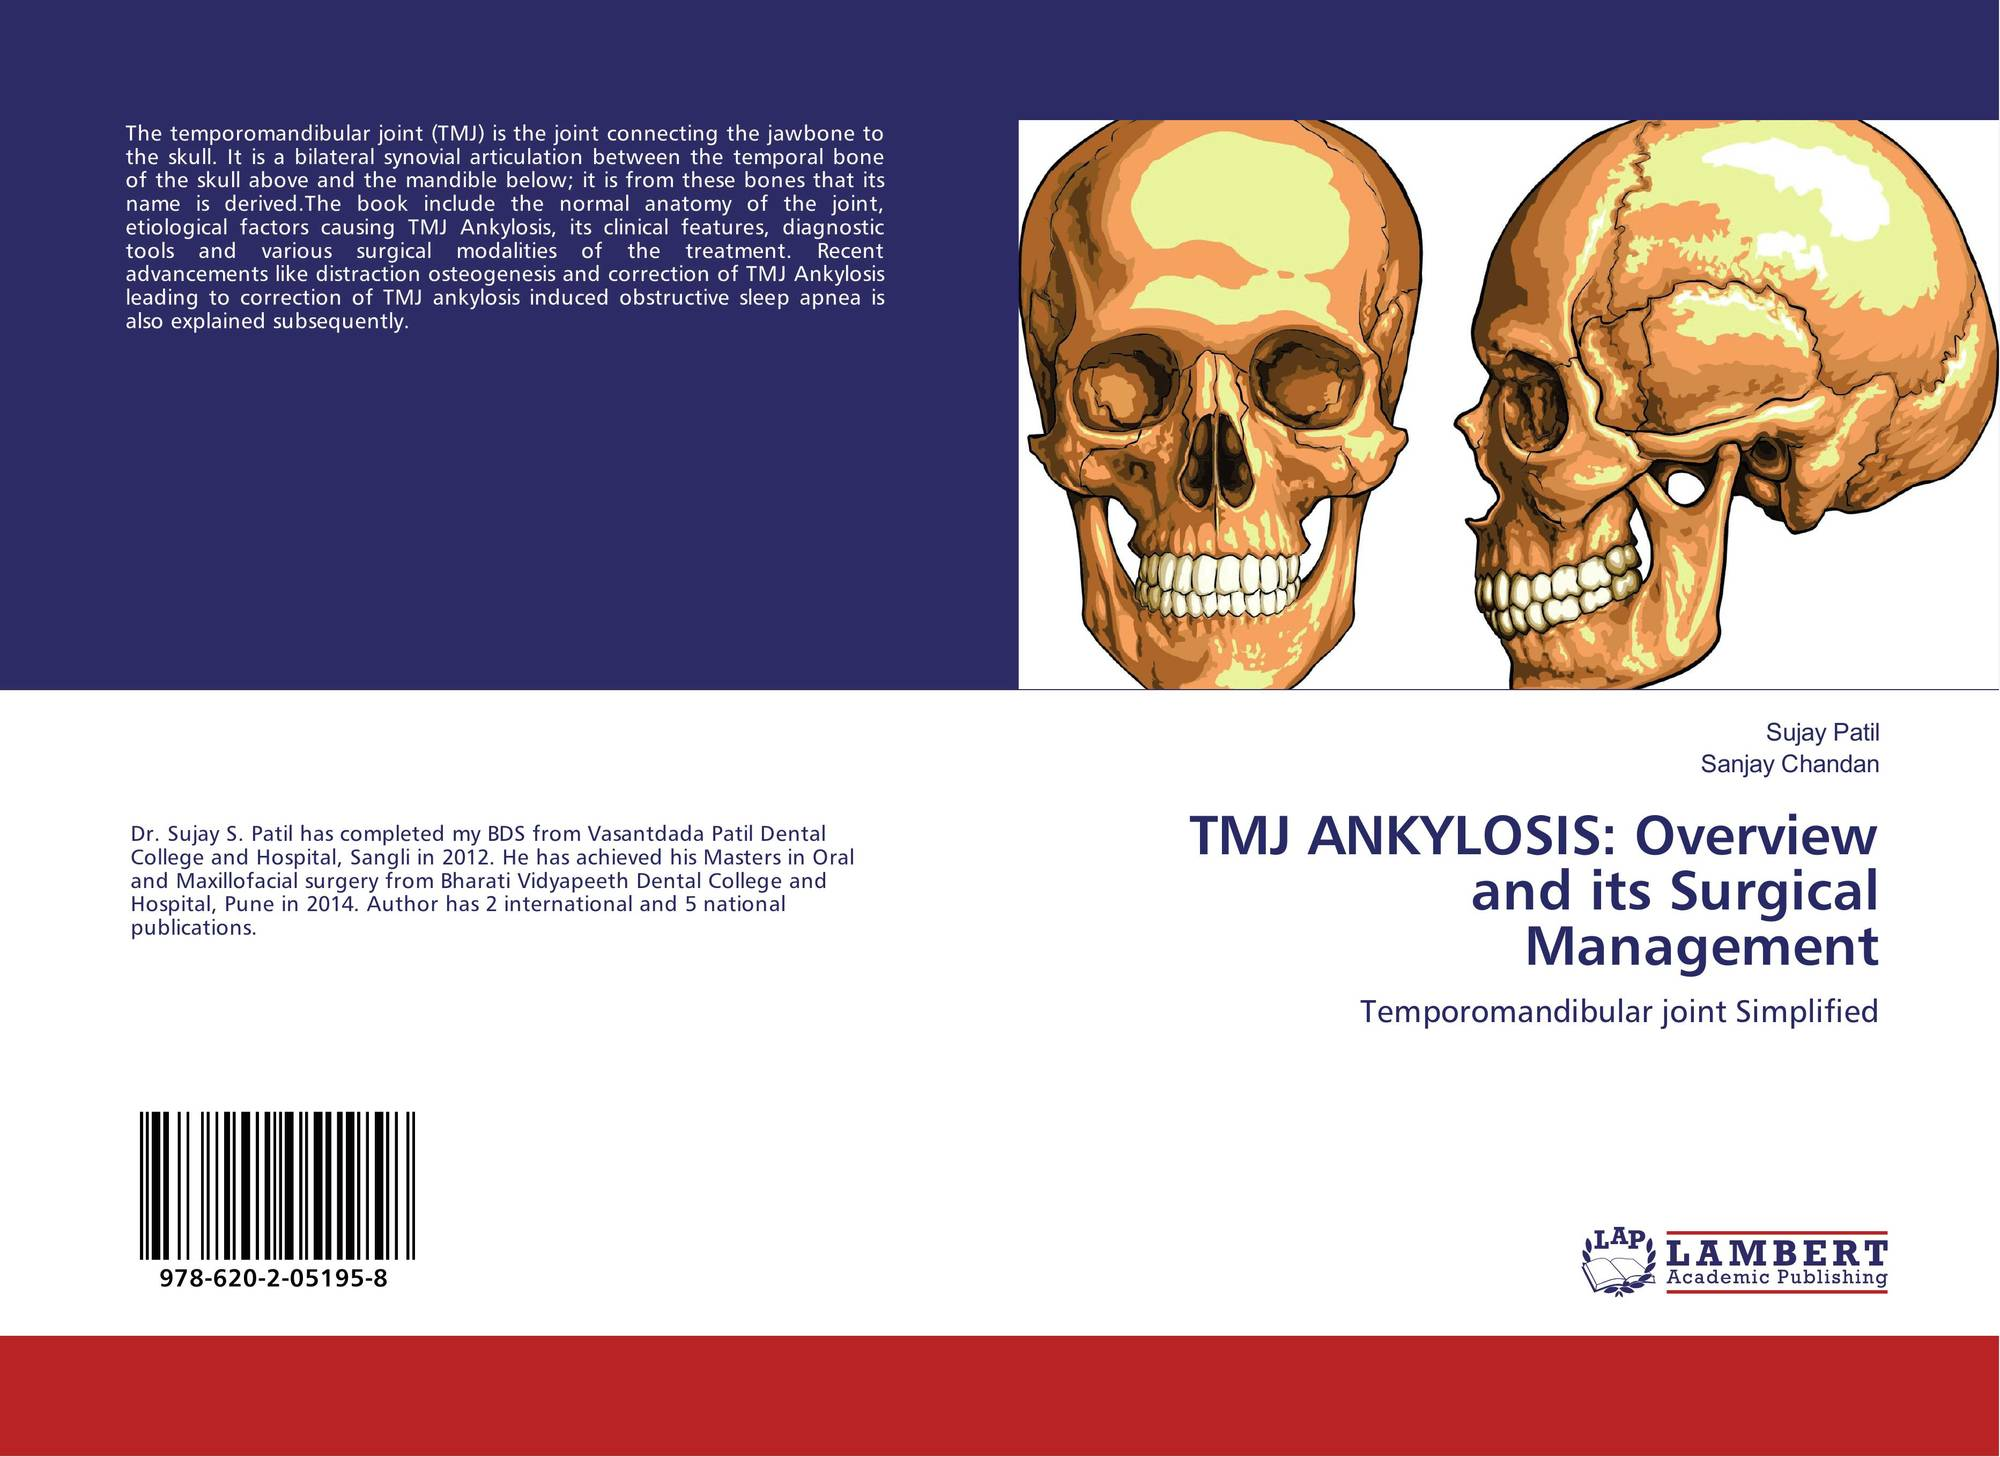 TMJ ANKYLOSIS: Overview and its Surgical Management, 978-620-2-05195 ...